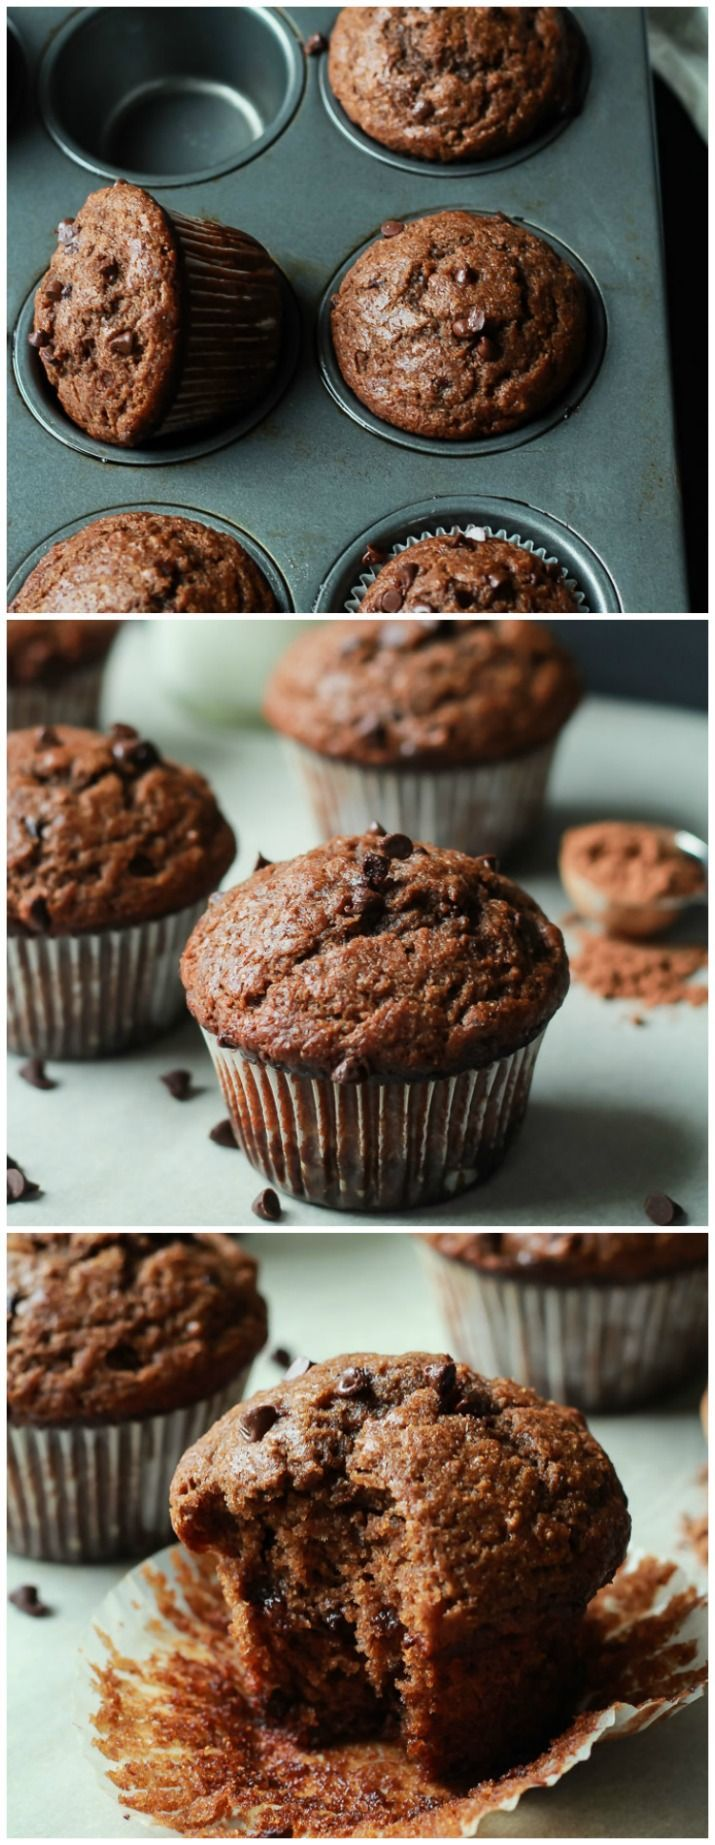 Double Chocolate Banana Muffins No Sugar, crazy moist, loads of chocolate flavor with great banana taste. These Skinny Double Chocolate Banana Muffins are the muffins of your dreams! | No Sugar, crazy moist, loads of chocolate flavor with great banana taste. These Skinny Double Chocolate Banana Muffins are the muffins of your dreams! |